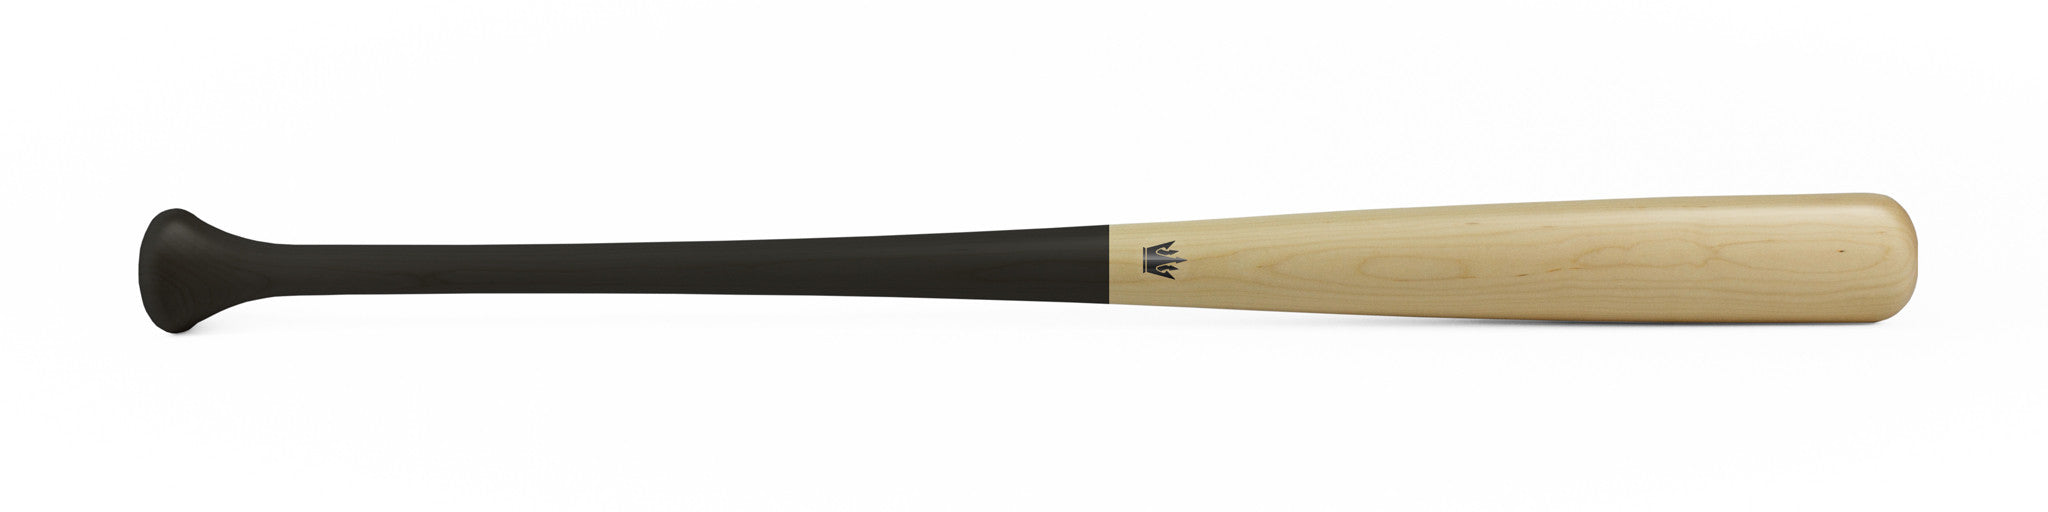 Wood bat - Birch model 280 Black Dip - 16